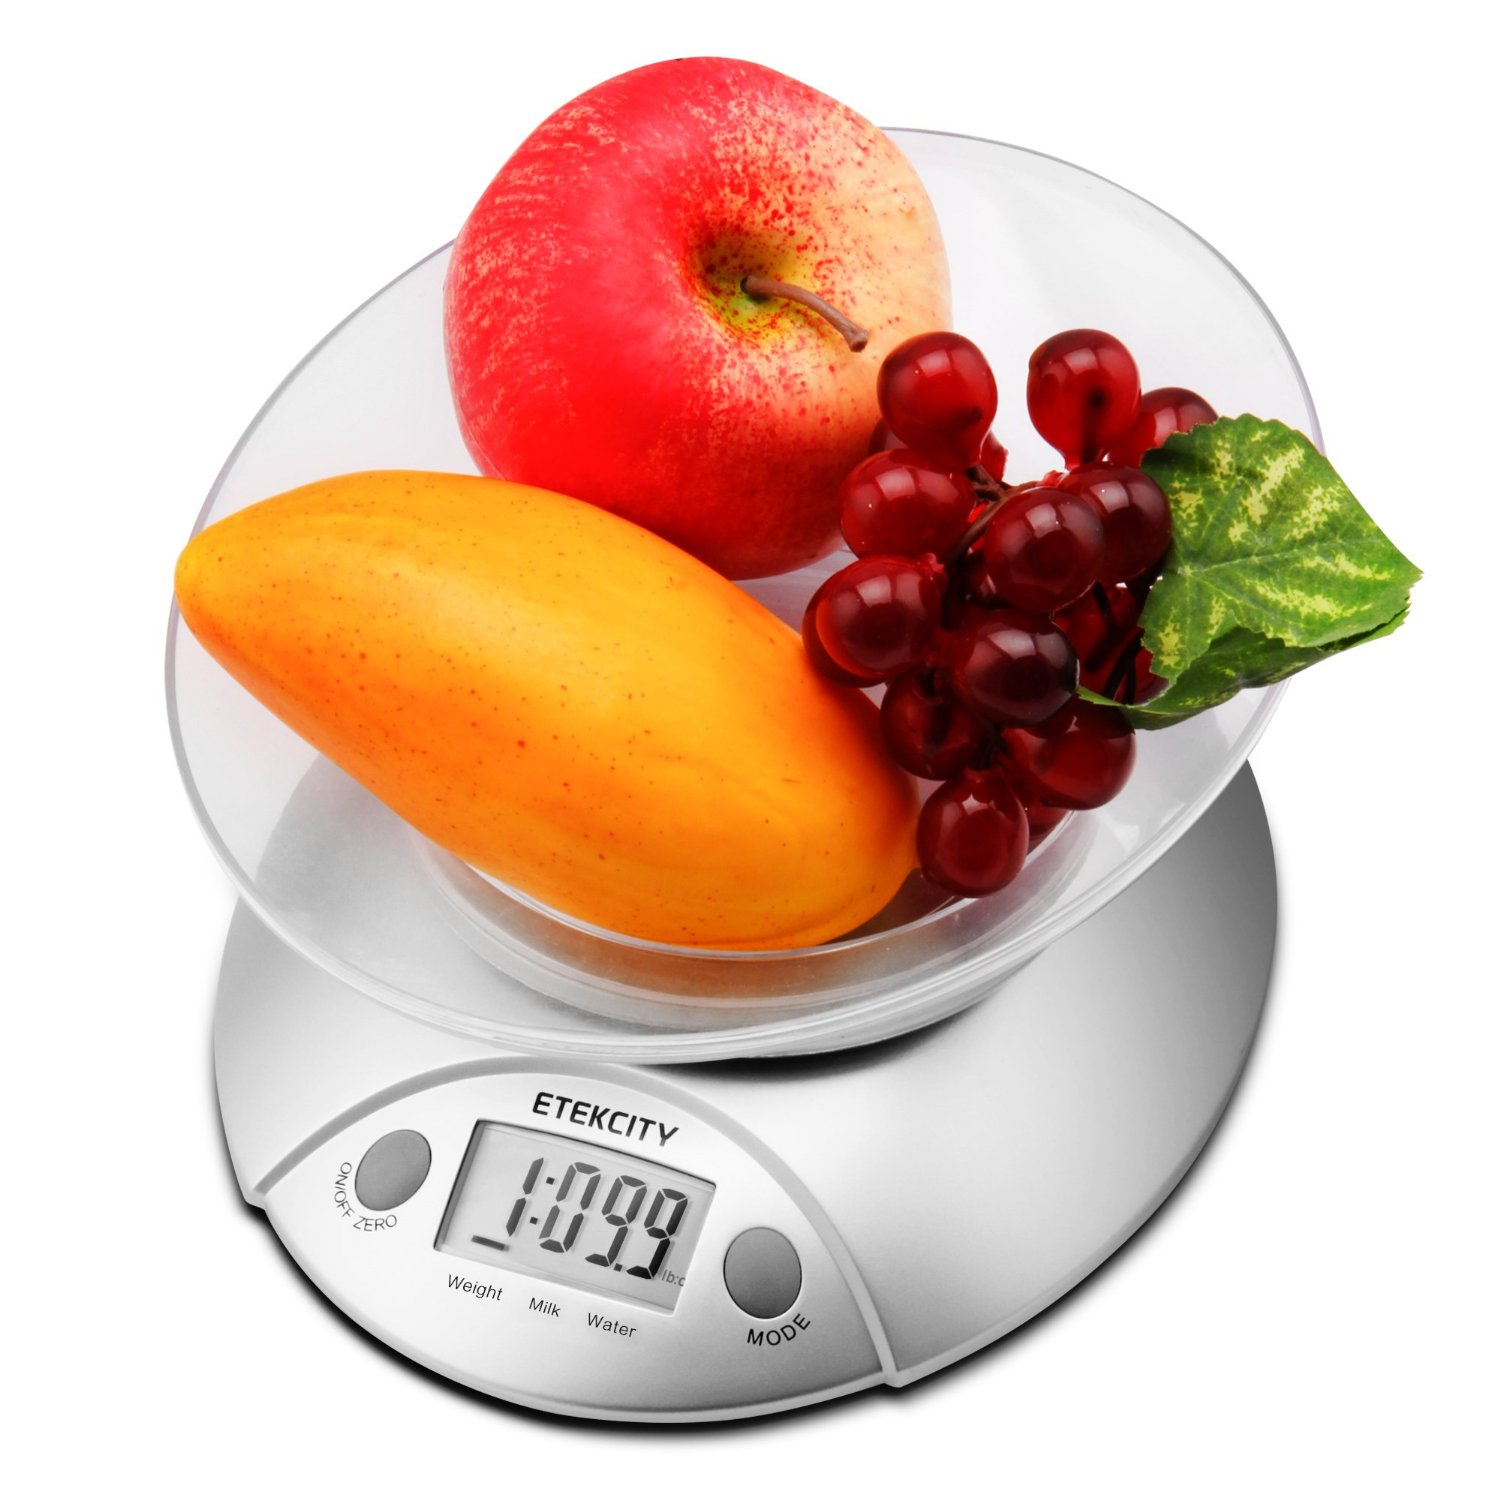 Top 10 Best Kitchen Scales Top Value Reviews